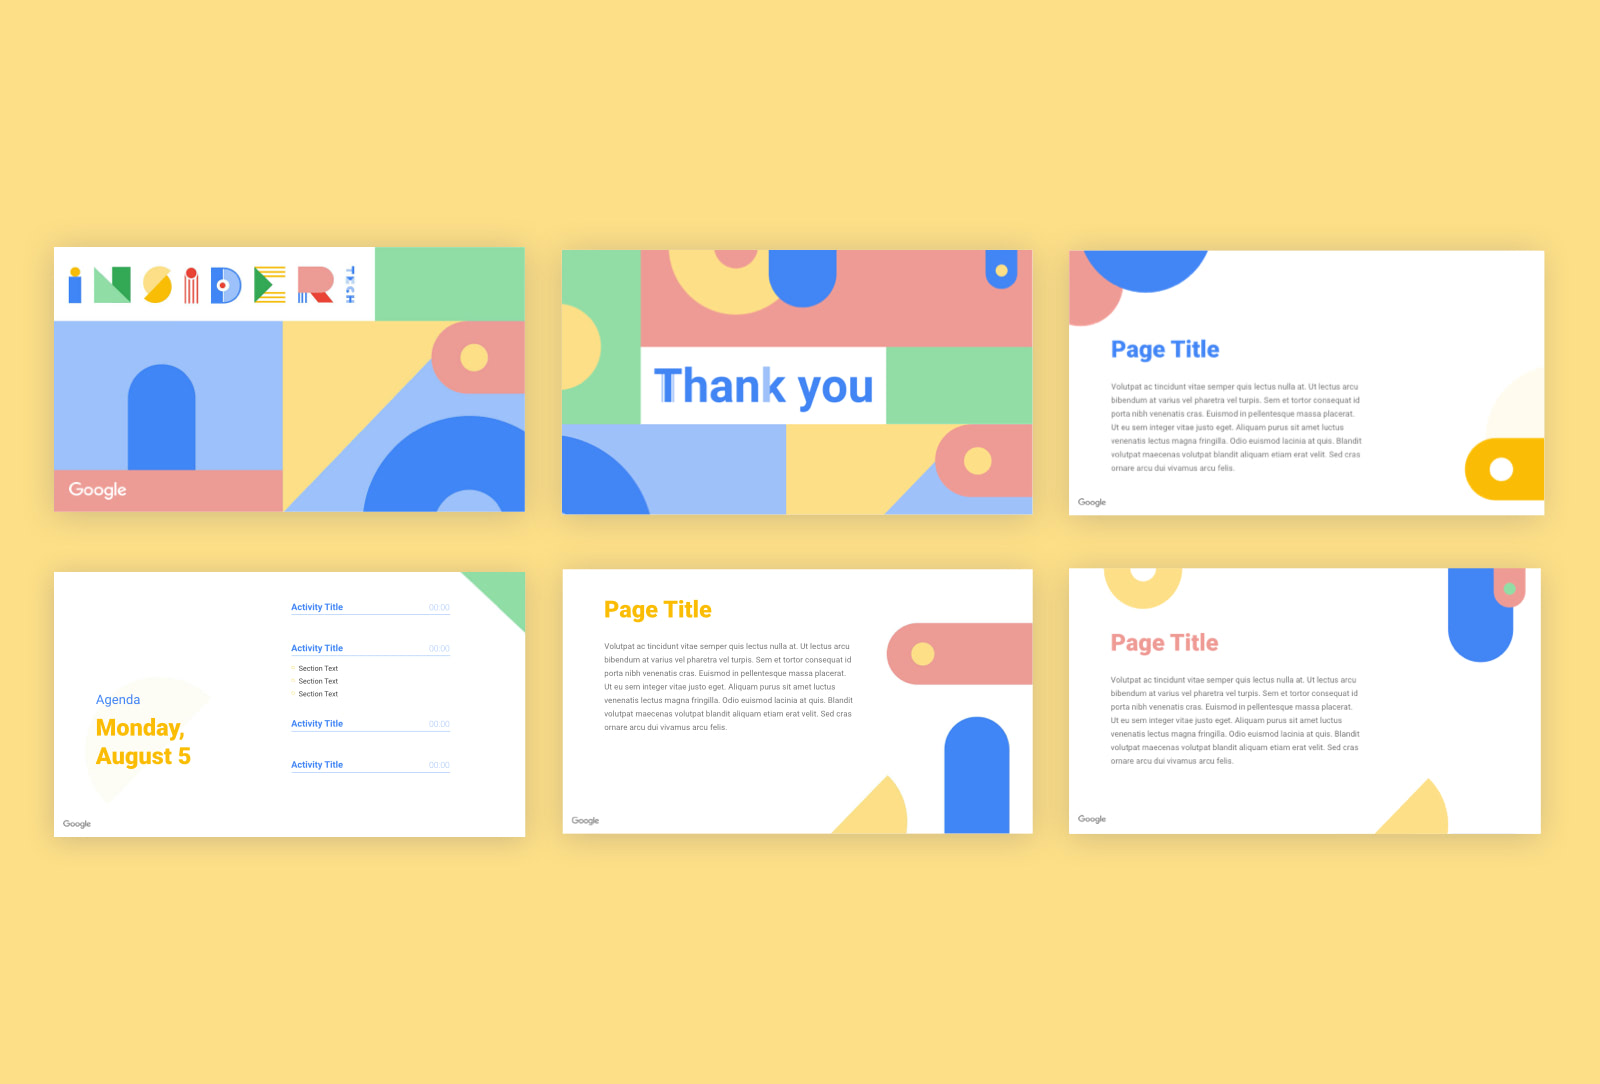 Branding-design-for-Google-Insider-program-hello-design